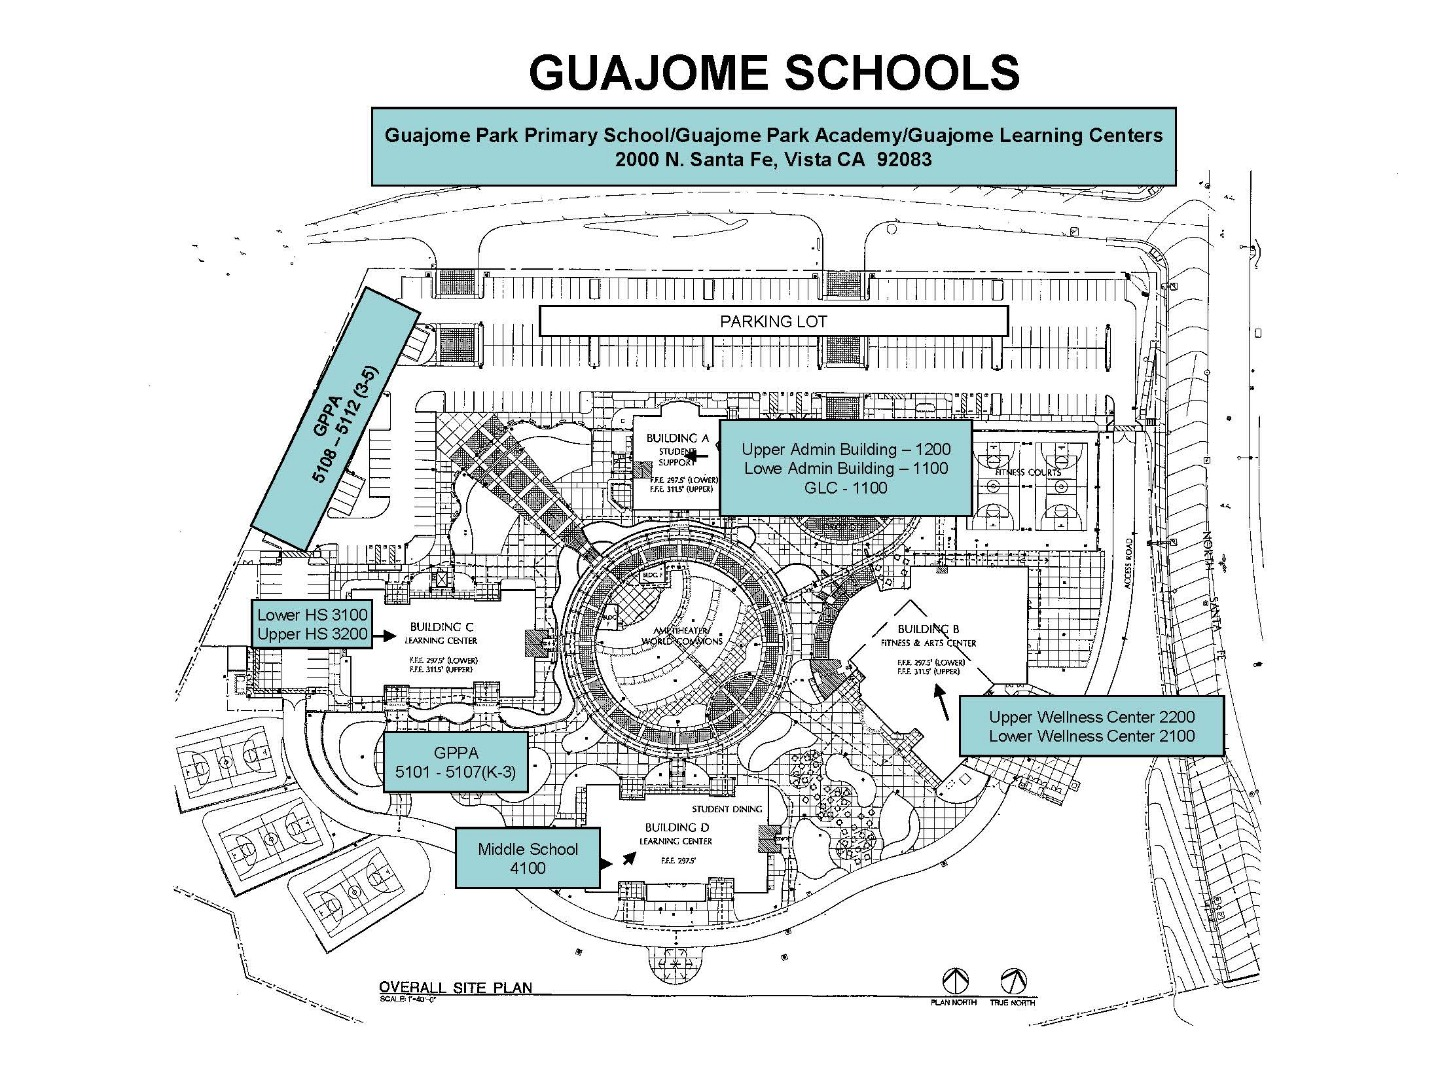 Map of the building numbers at guajome schools